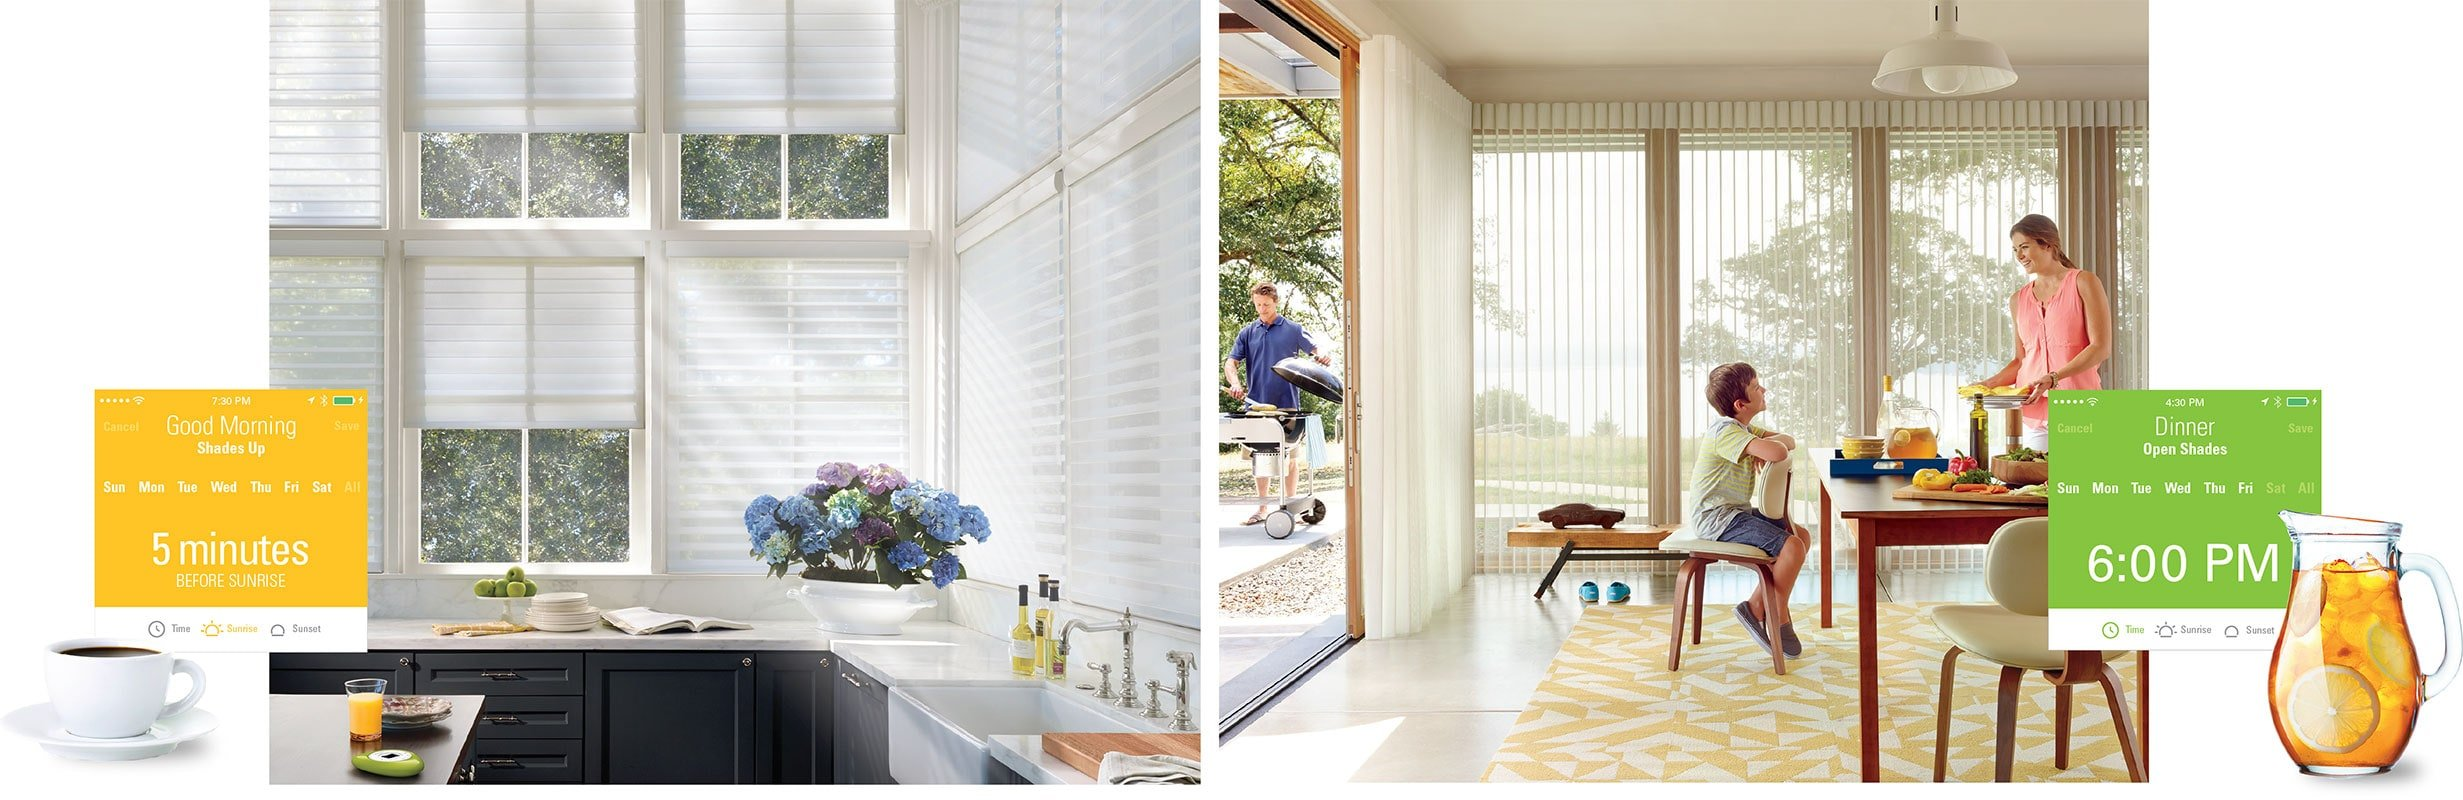 Motorized Shades, Motorized Shades in Westchester County, Motorized Shades in Greenwich Connecticut, Motorized Shades in Scarsdale, Motorized Shades in Larchmont, Motorized Shades in White Plains